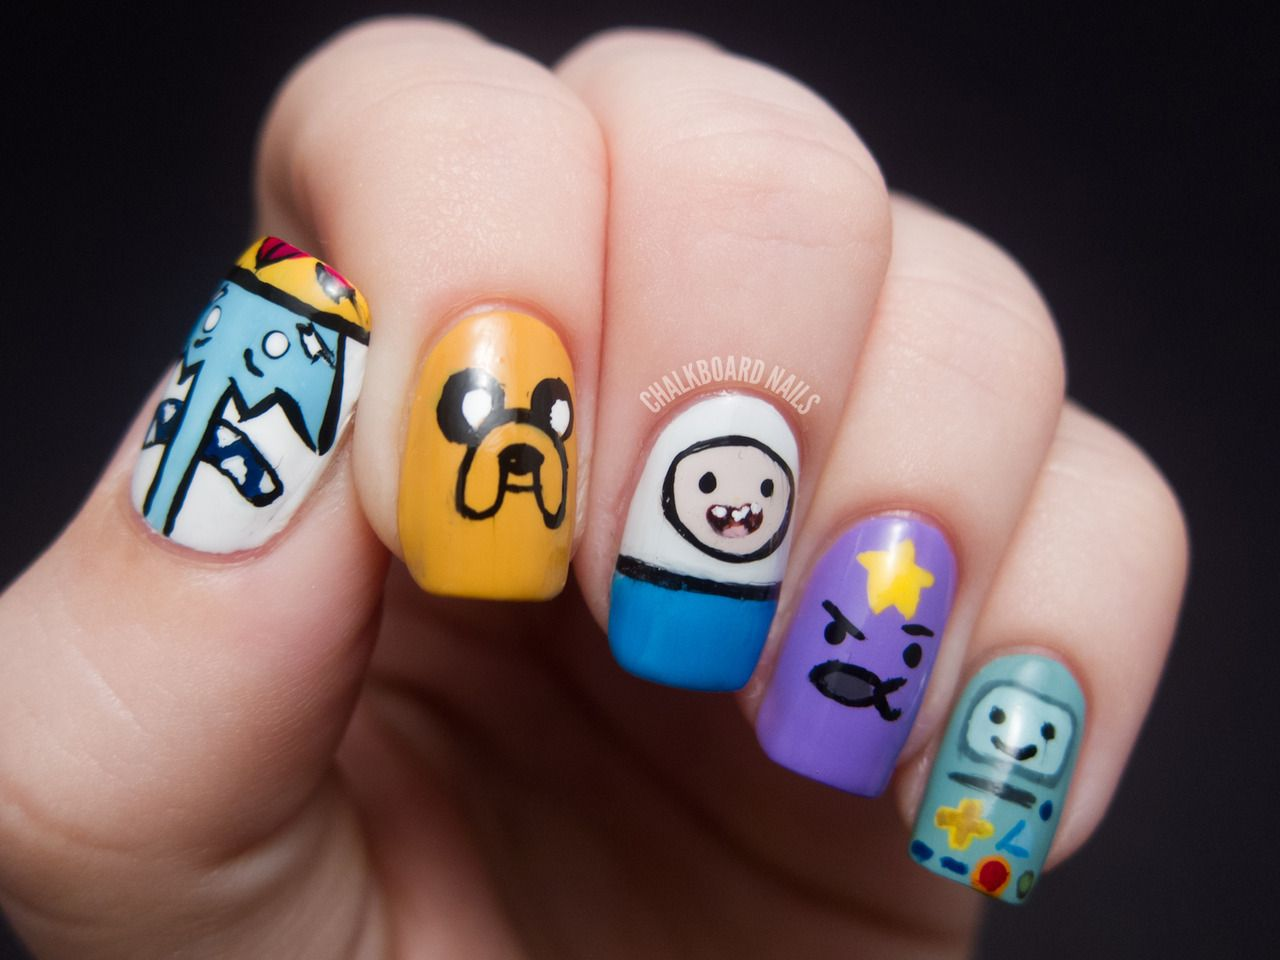 Nails art tumblr buscar con google nails art pinterest chalkboardnails adventure time nail art i love the cartoon adventure time lumpy space princess is probably one of my favorite cartoon characters ever prinsesfo Choice Image